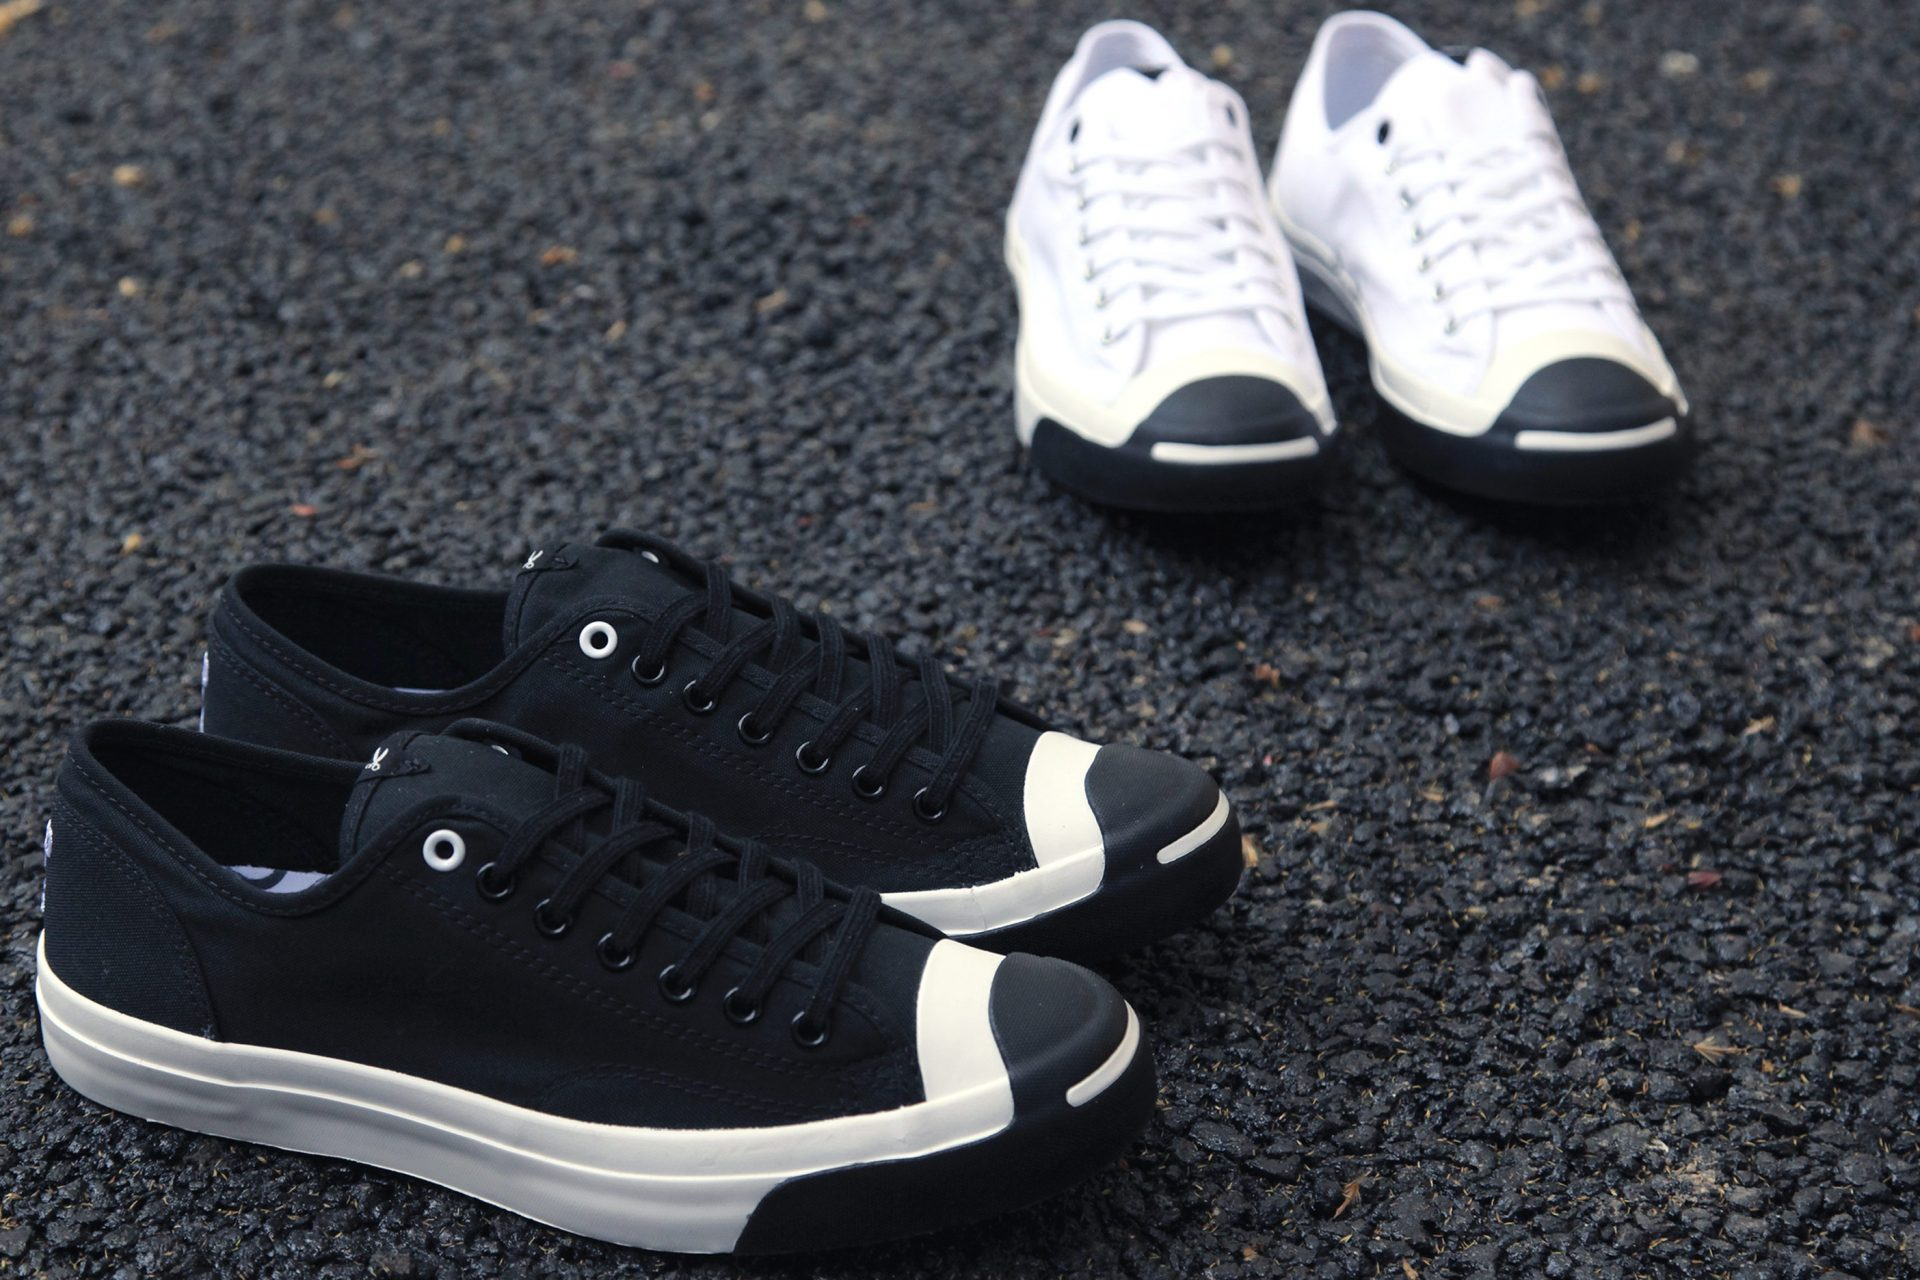 Converse and Jack Purcell